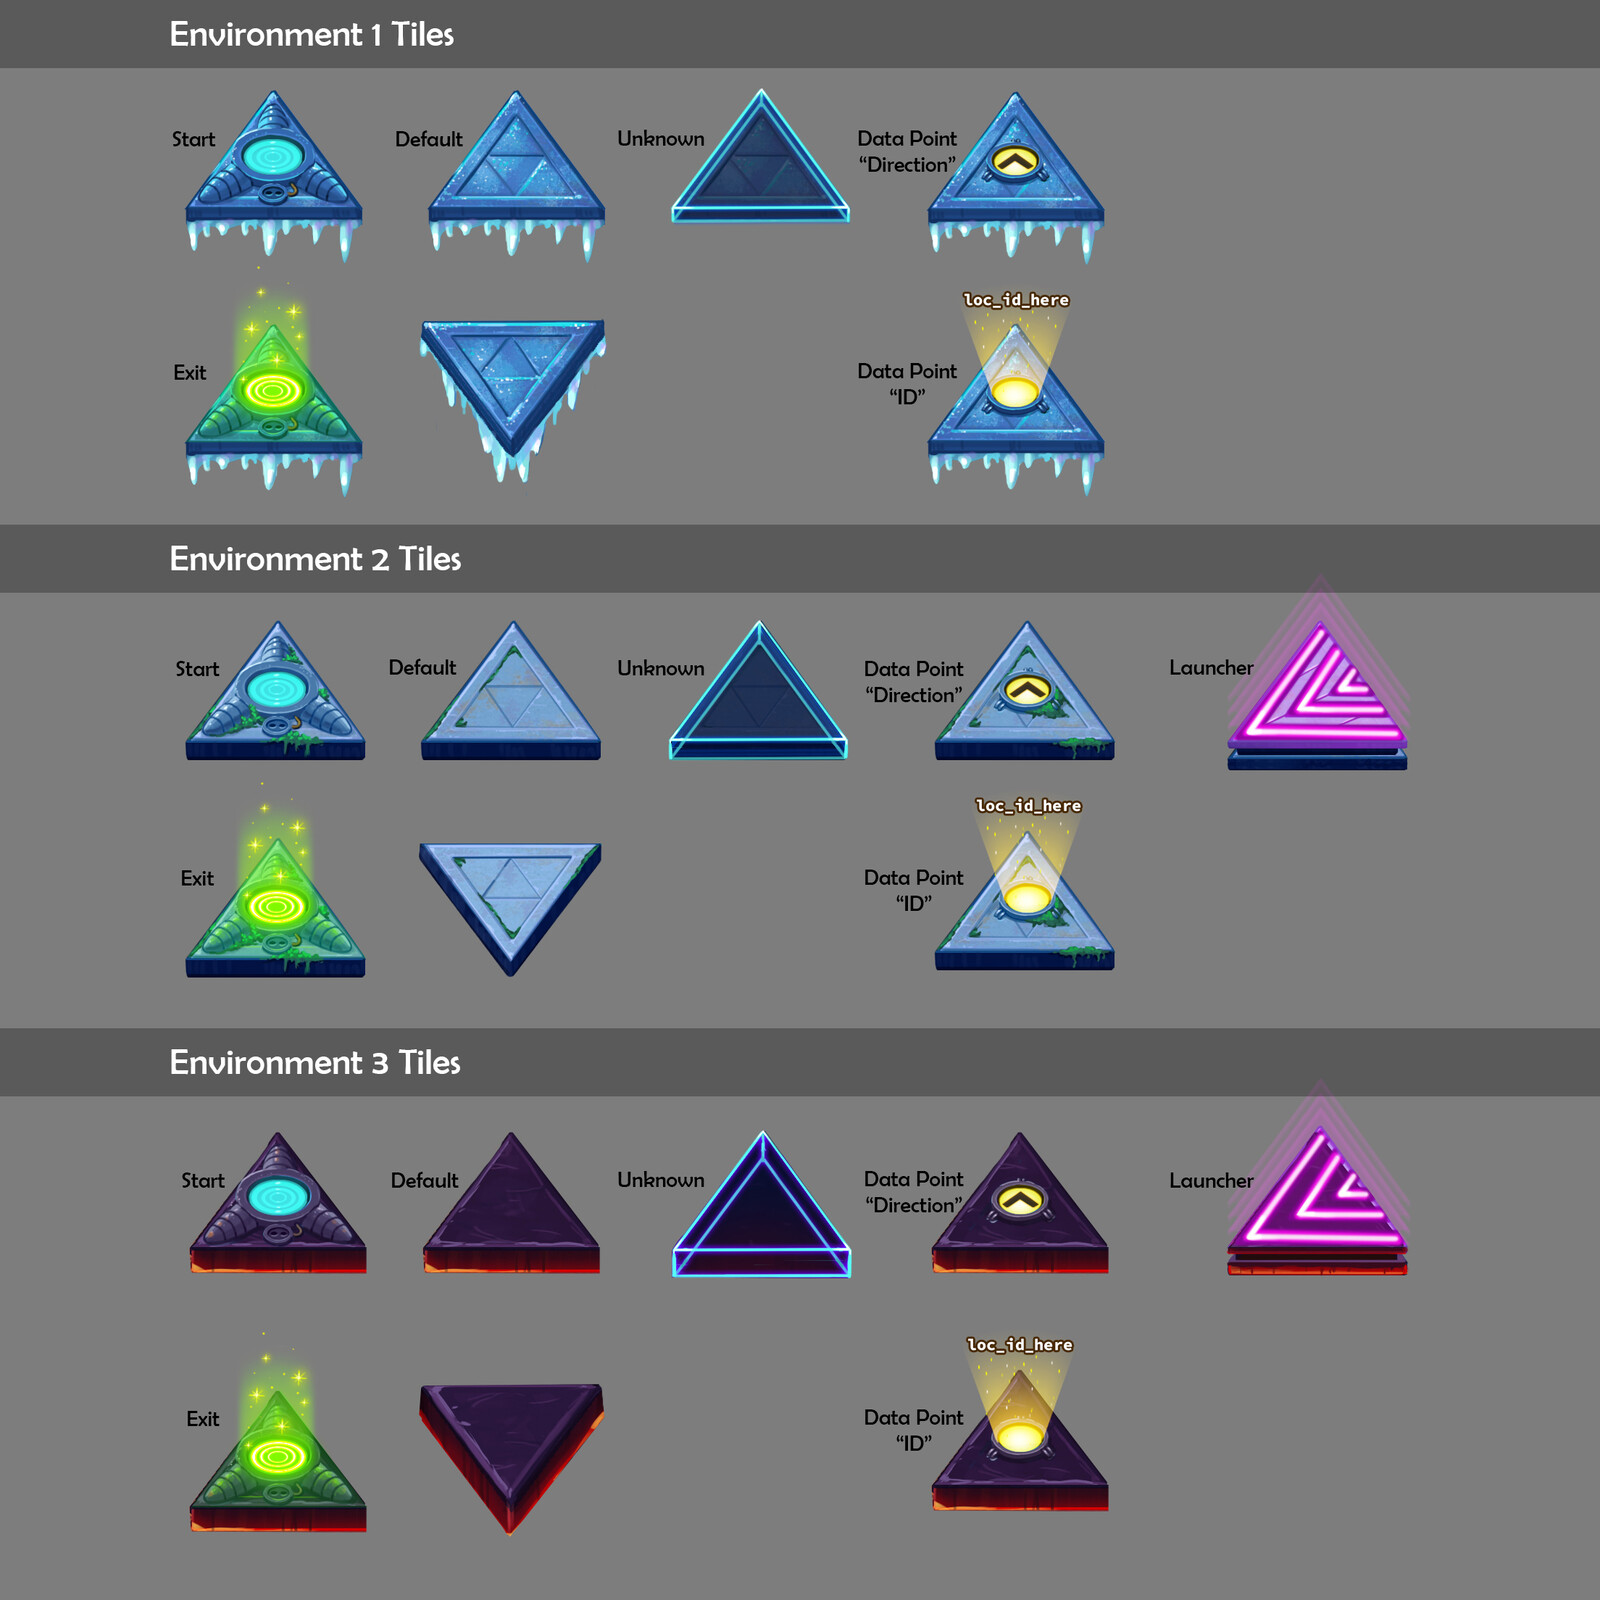 Early tile concepts for all stages.